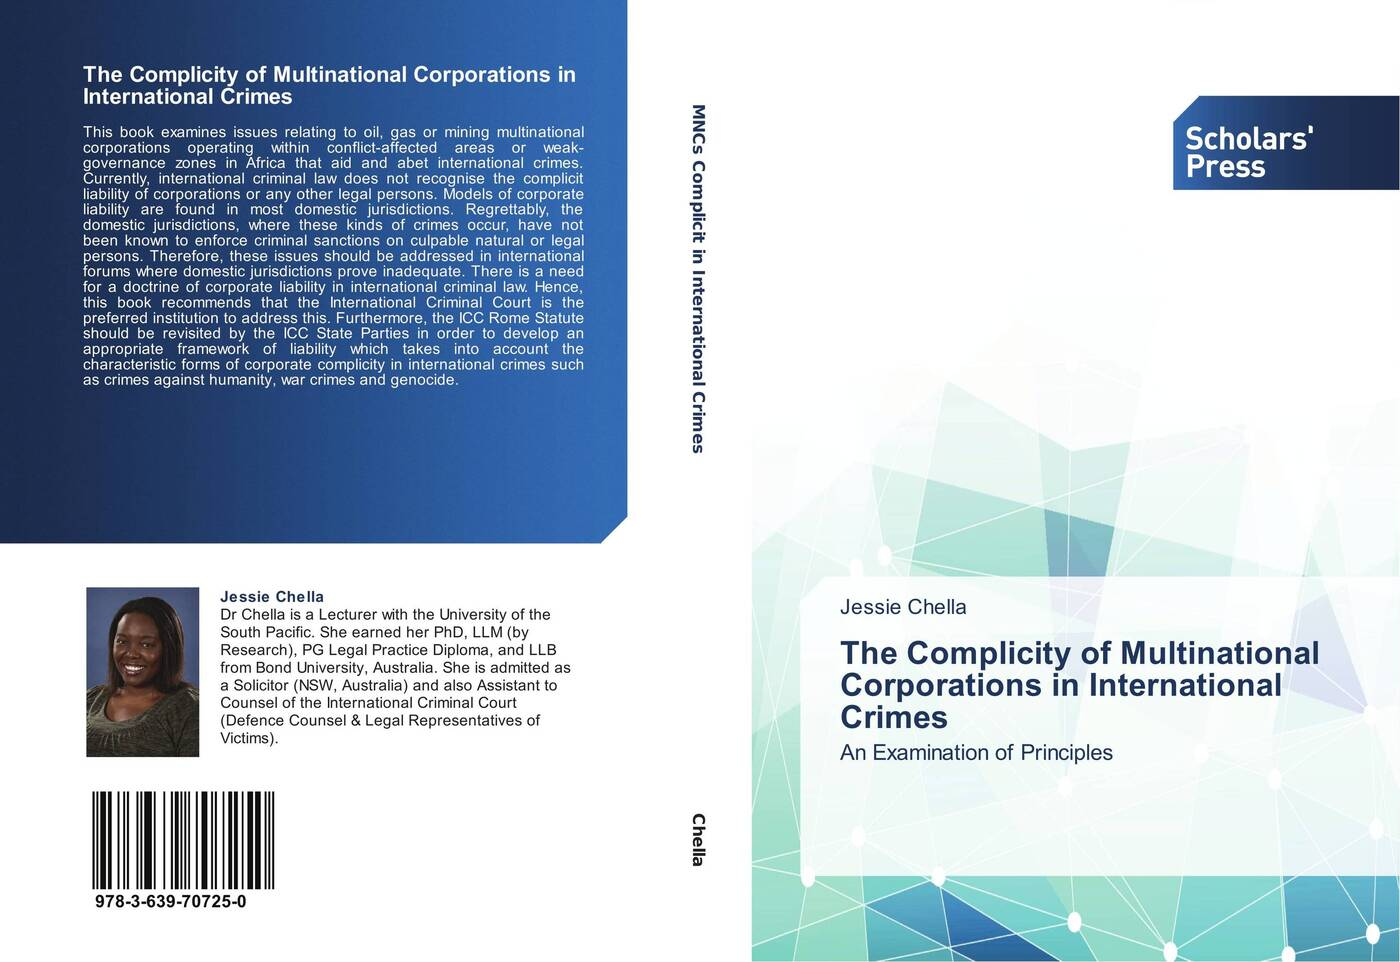 Jessie Chella The Complicity of Multinational Corporations in International Crimes towards a decade of the international criminal court in africa